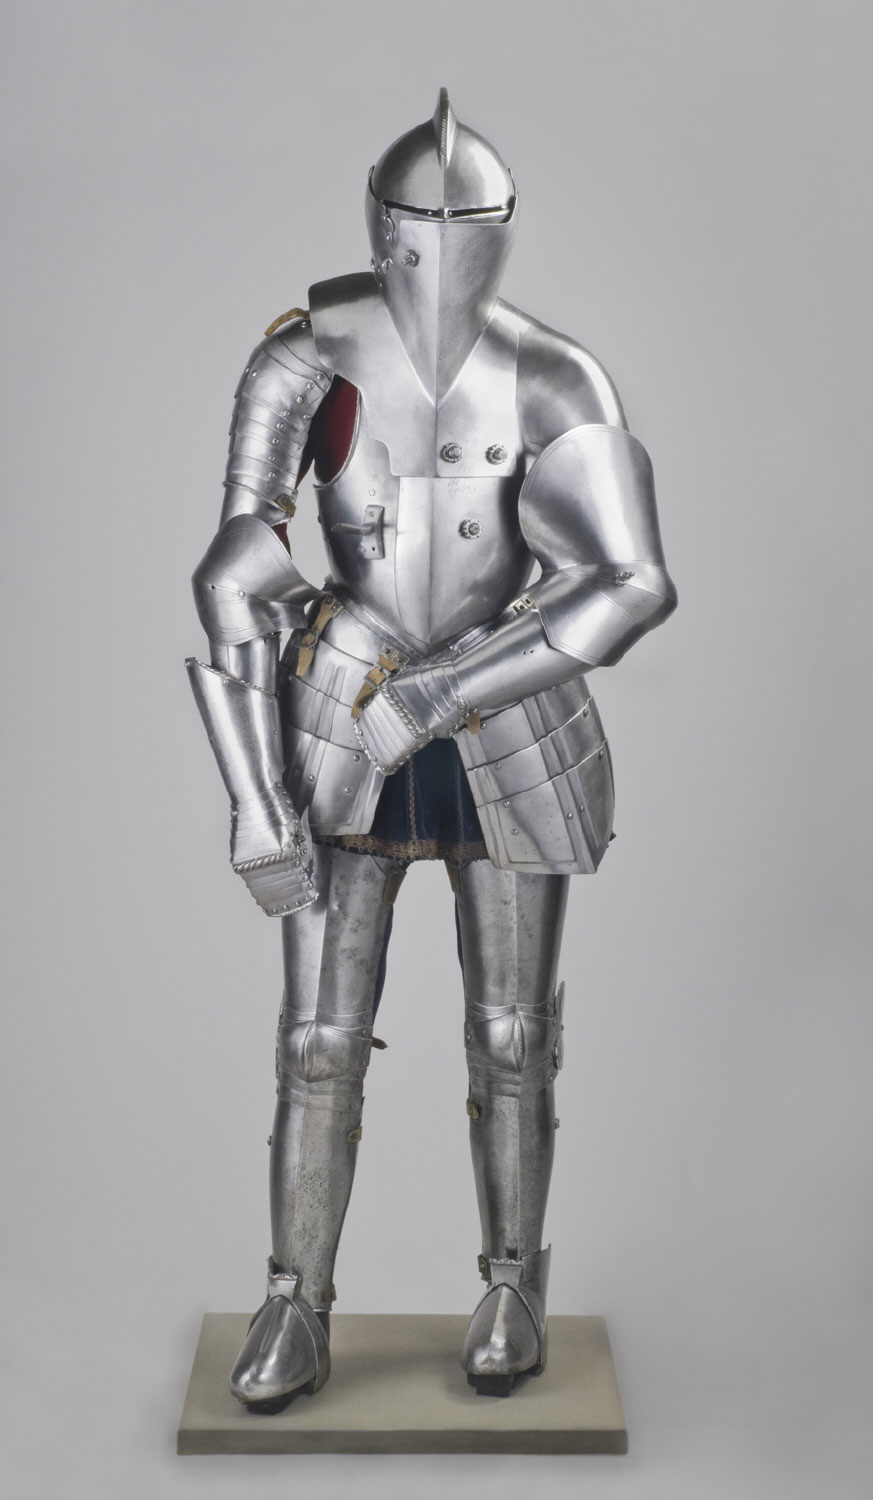 Armor for Use in the Tilt, with Boot Stirrups